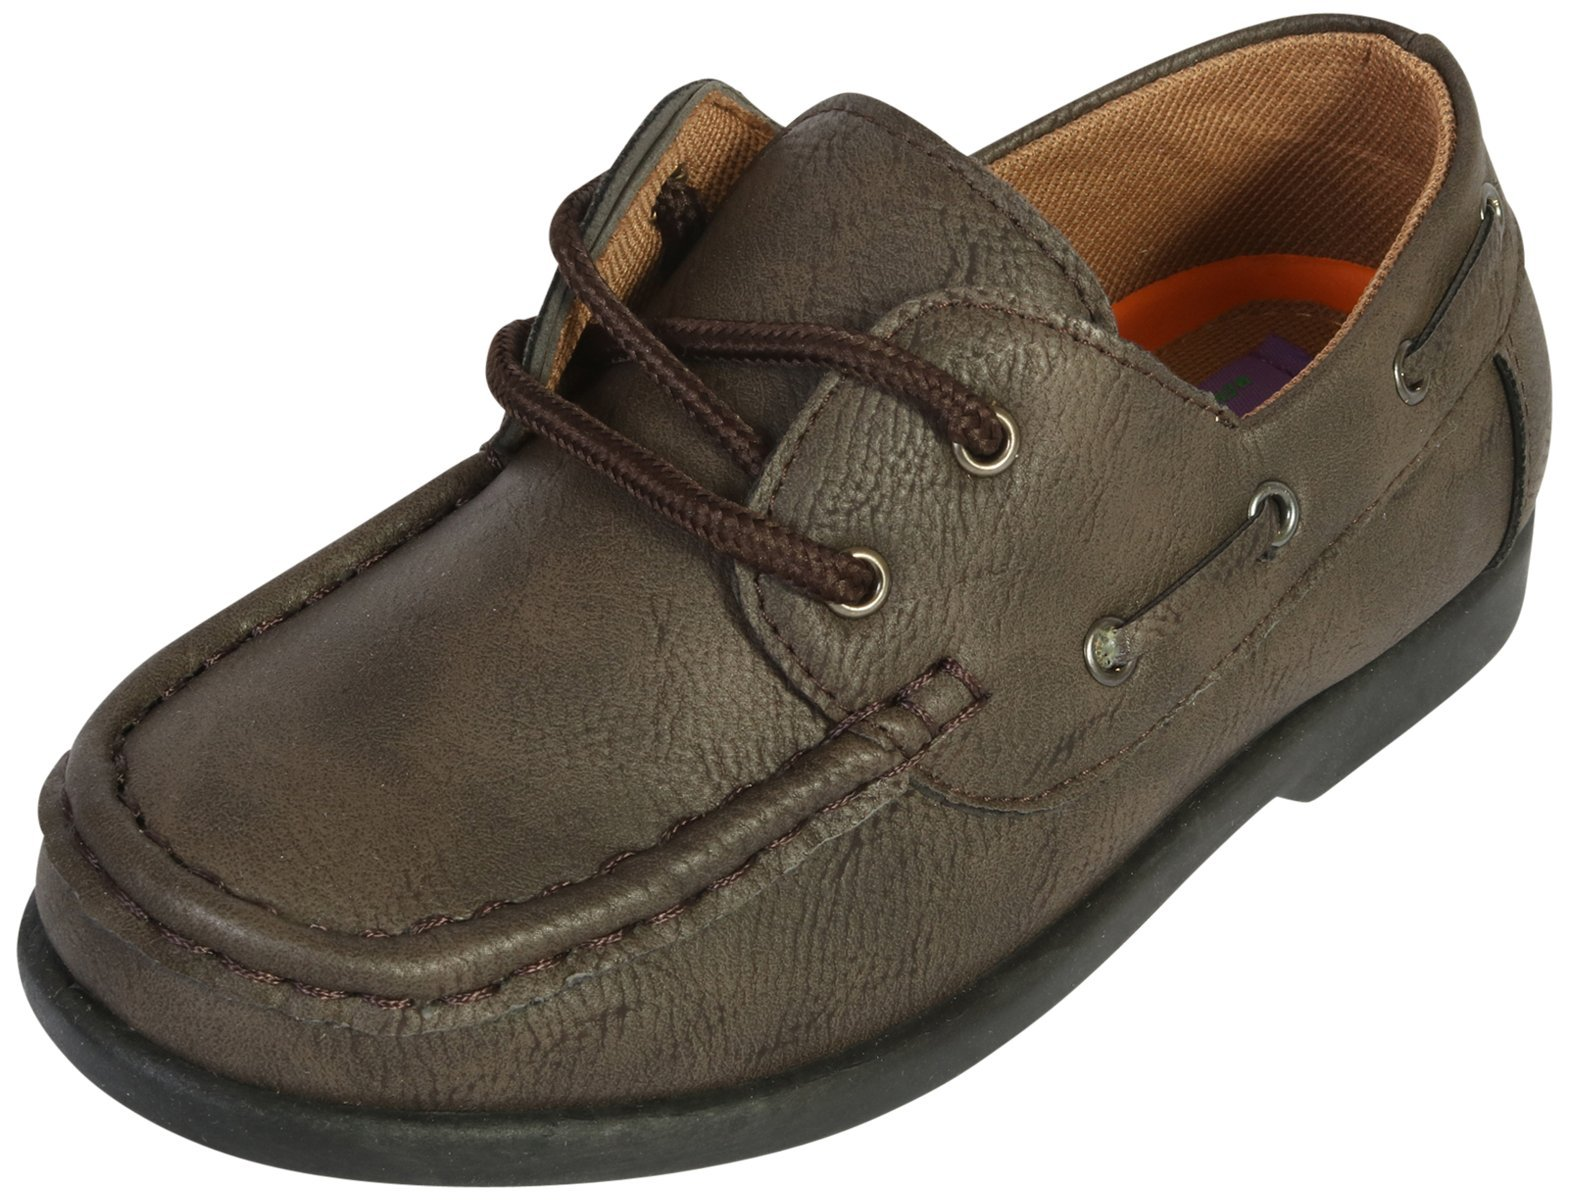 Jodano Collection Boys Slip on Boat Shoes with Memory Foam Insole, Brown, 11 M US Little Kid'